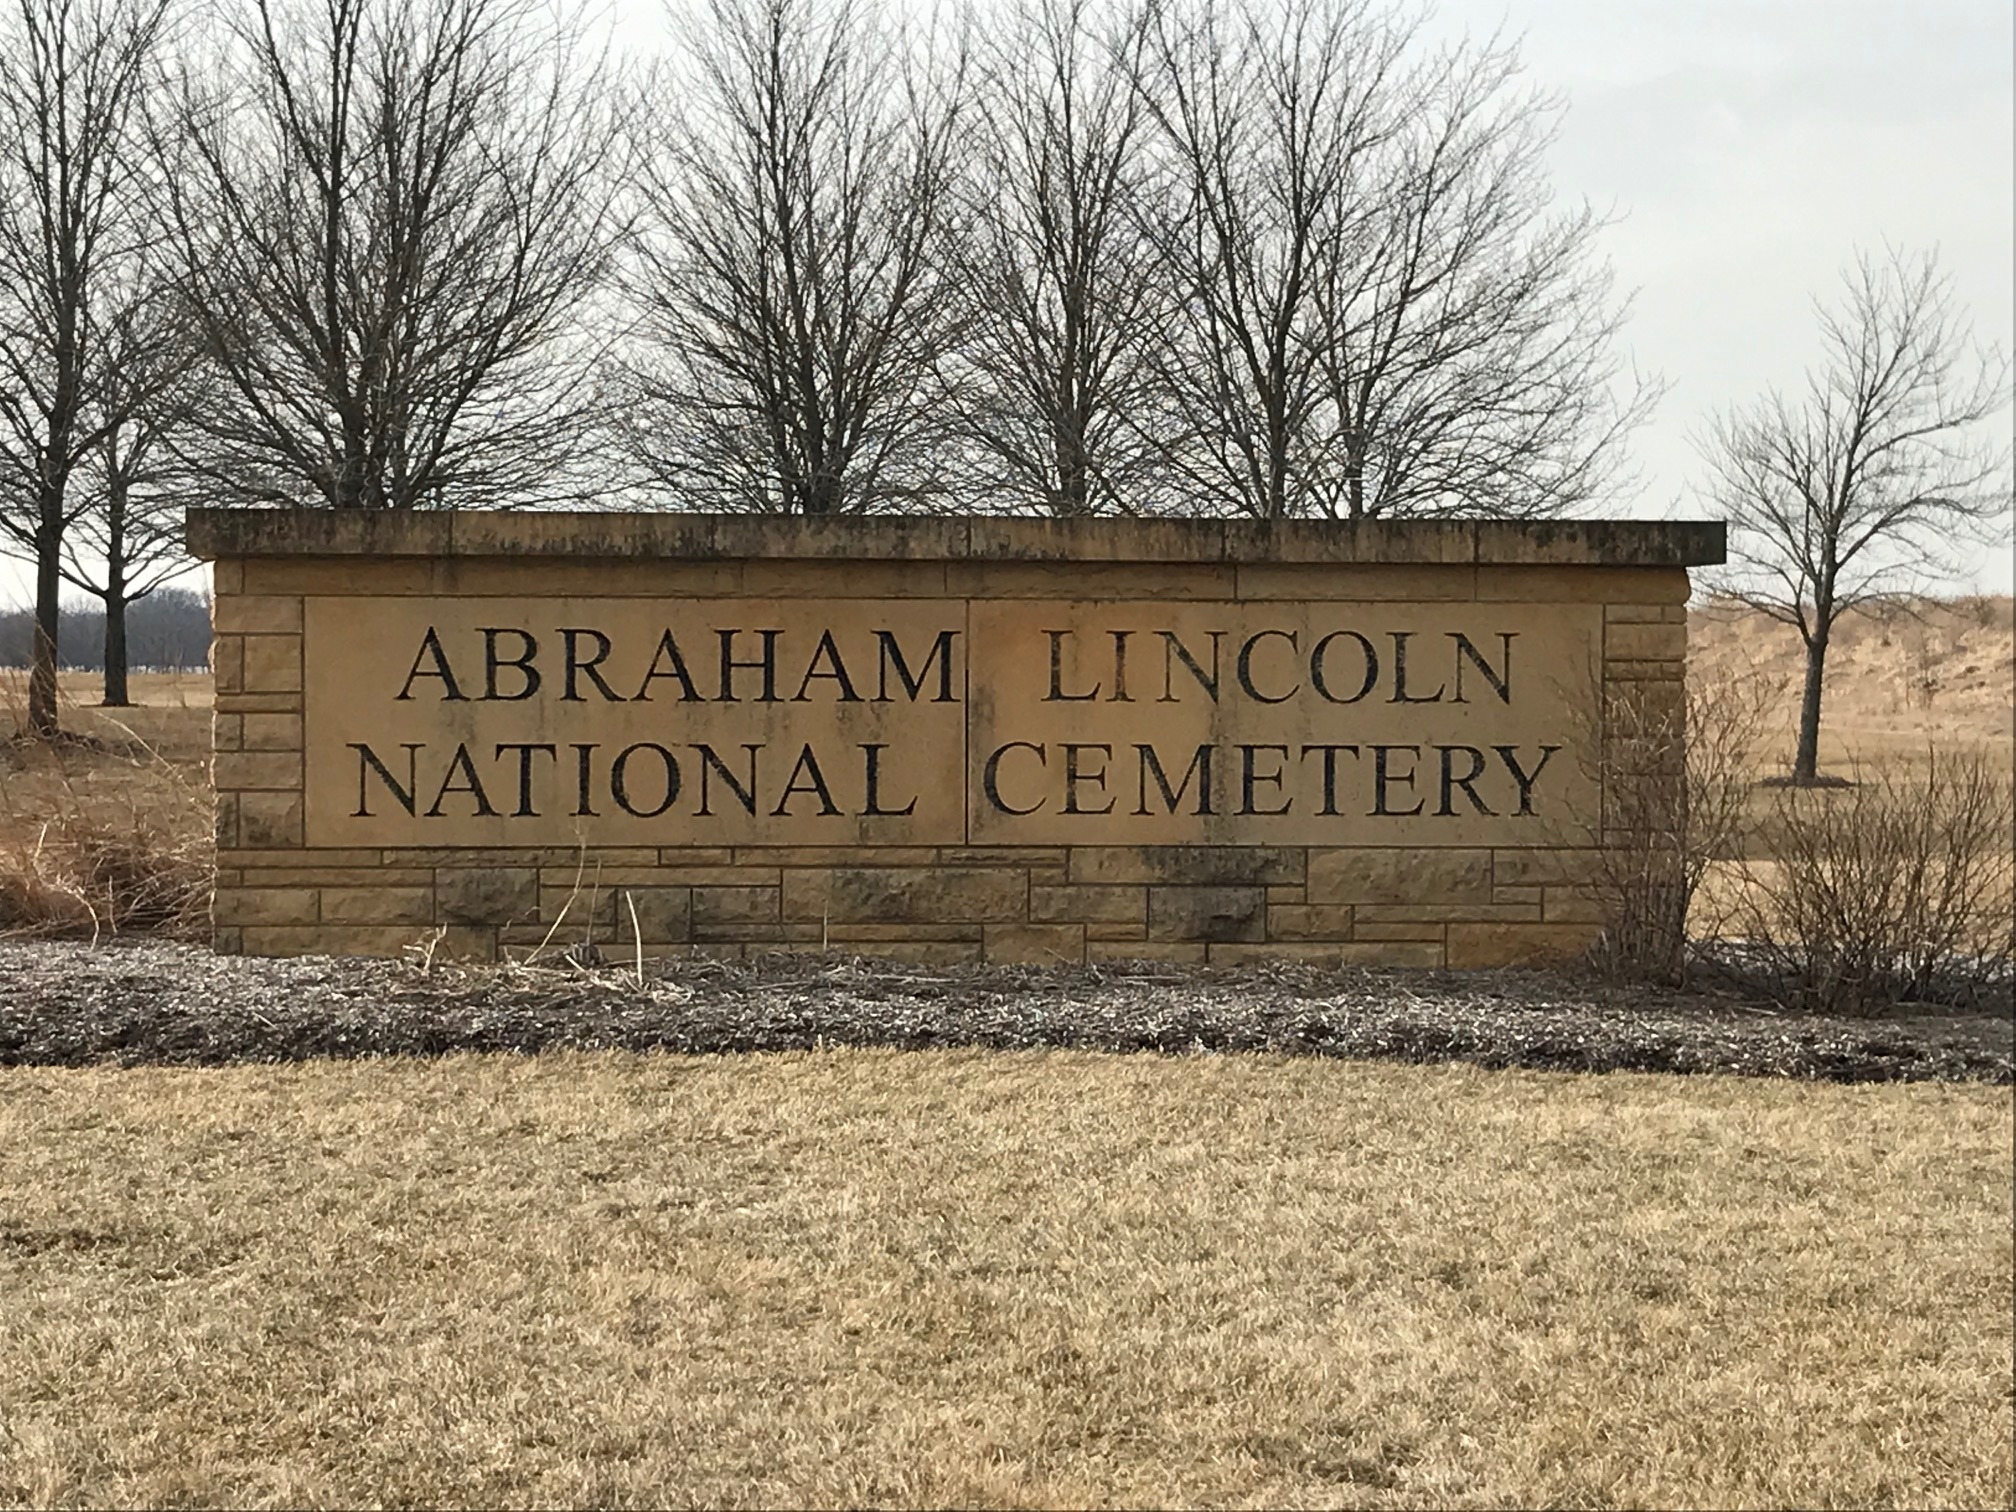 Abraham Lincoln National Cemetery - 2019 Project Update: Carefree Lawn Sprinklers Inc., is completing a Commercial Sprinkler System Installation for the Abraham Lincoln National Cemetery. Follow along for updates!